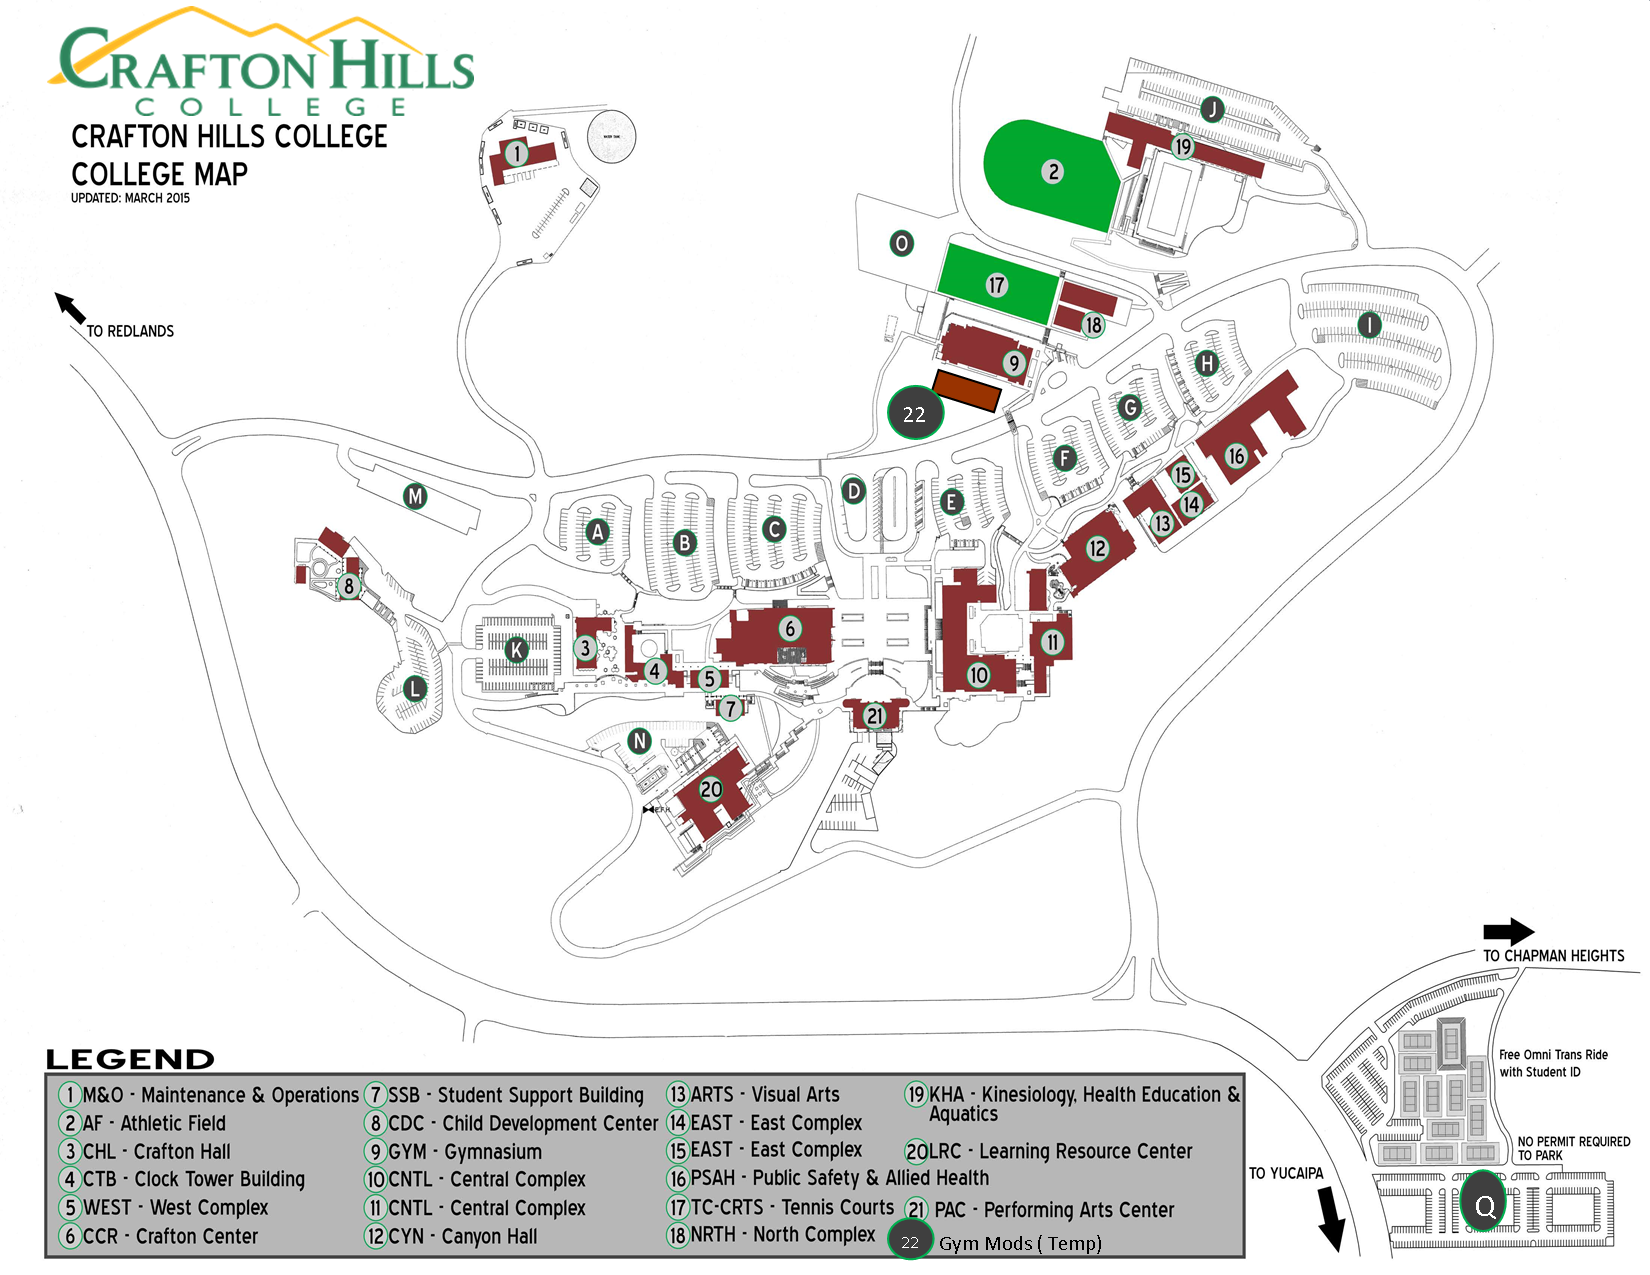 Crafton Hills College Campus Map.Crafton Hills College Campus Map Poisk Po Kartinkam Red